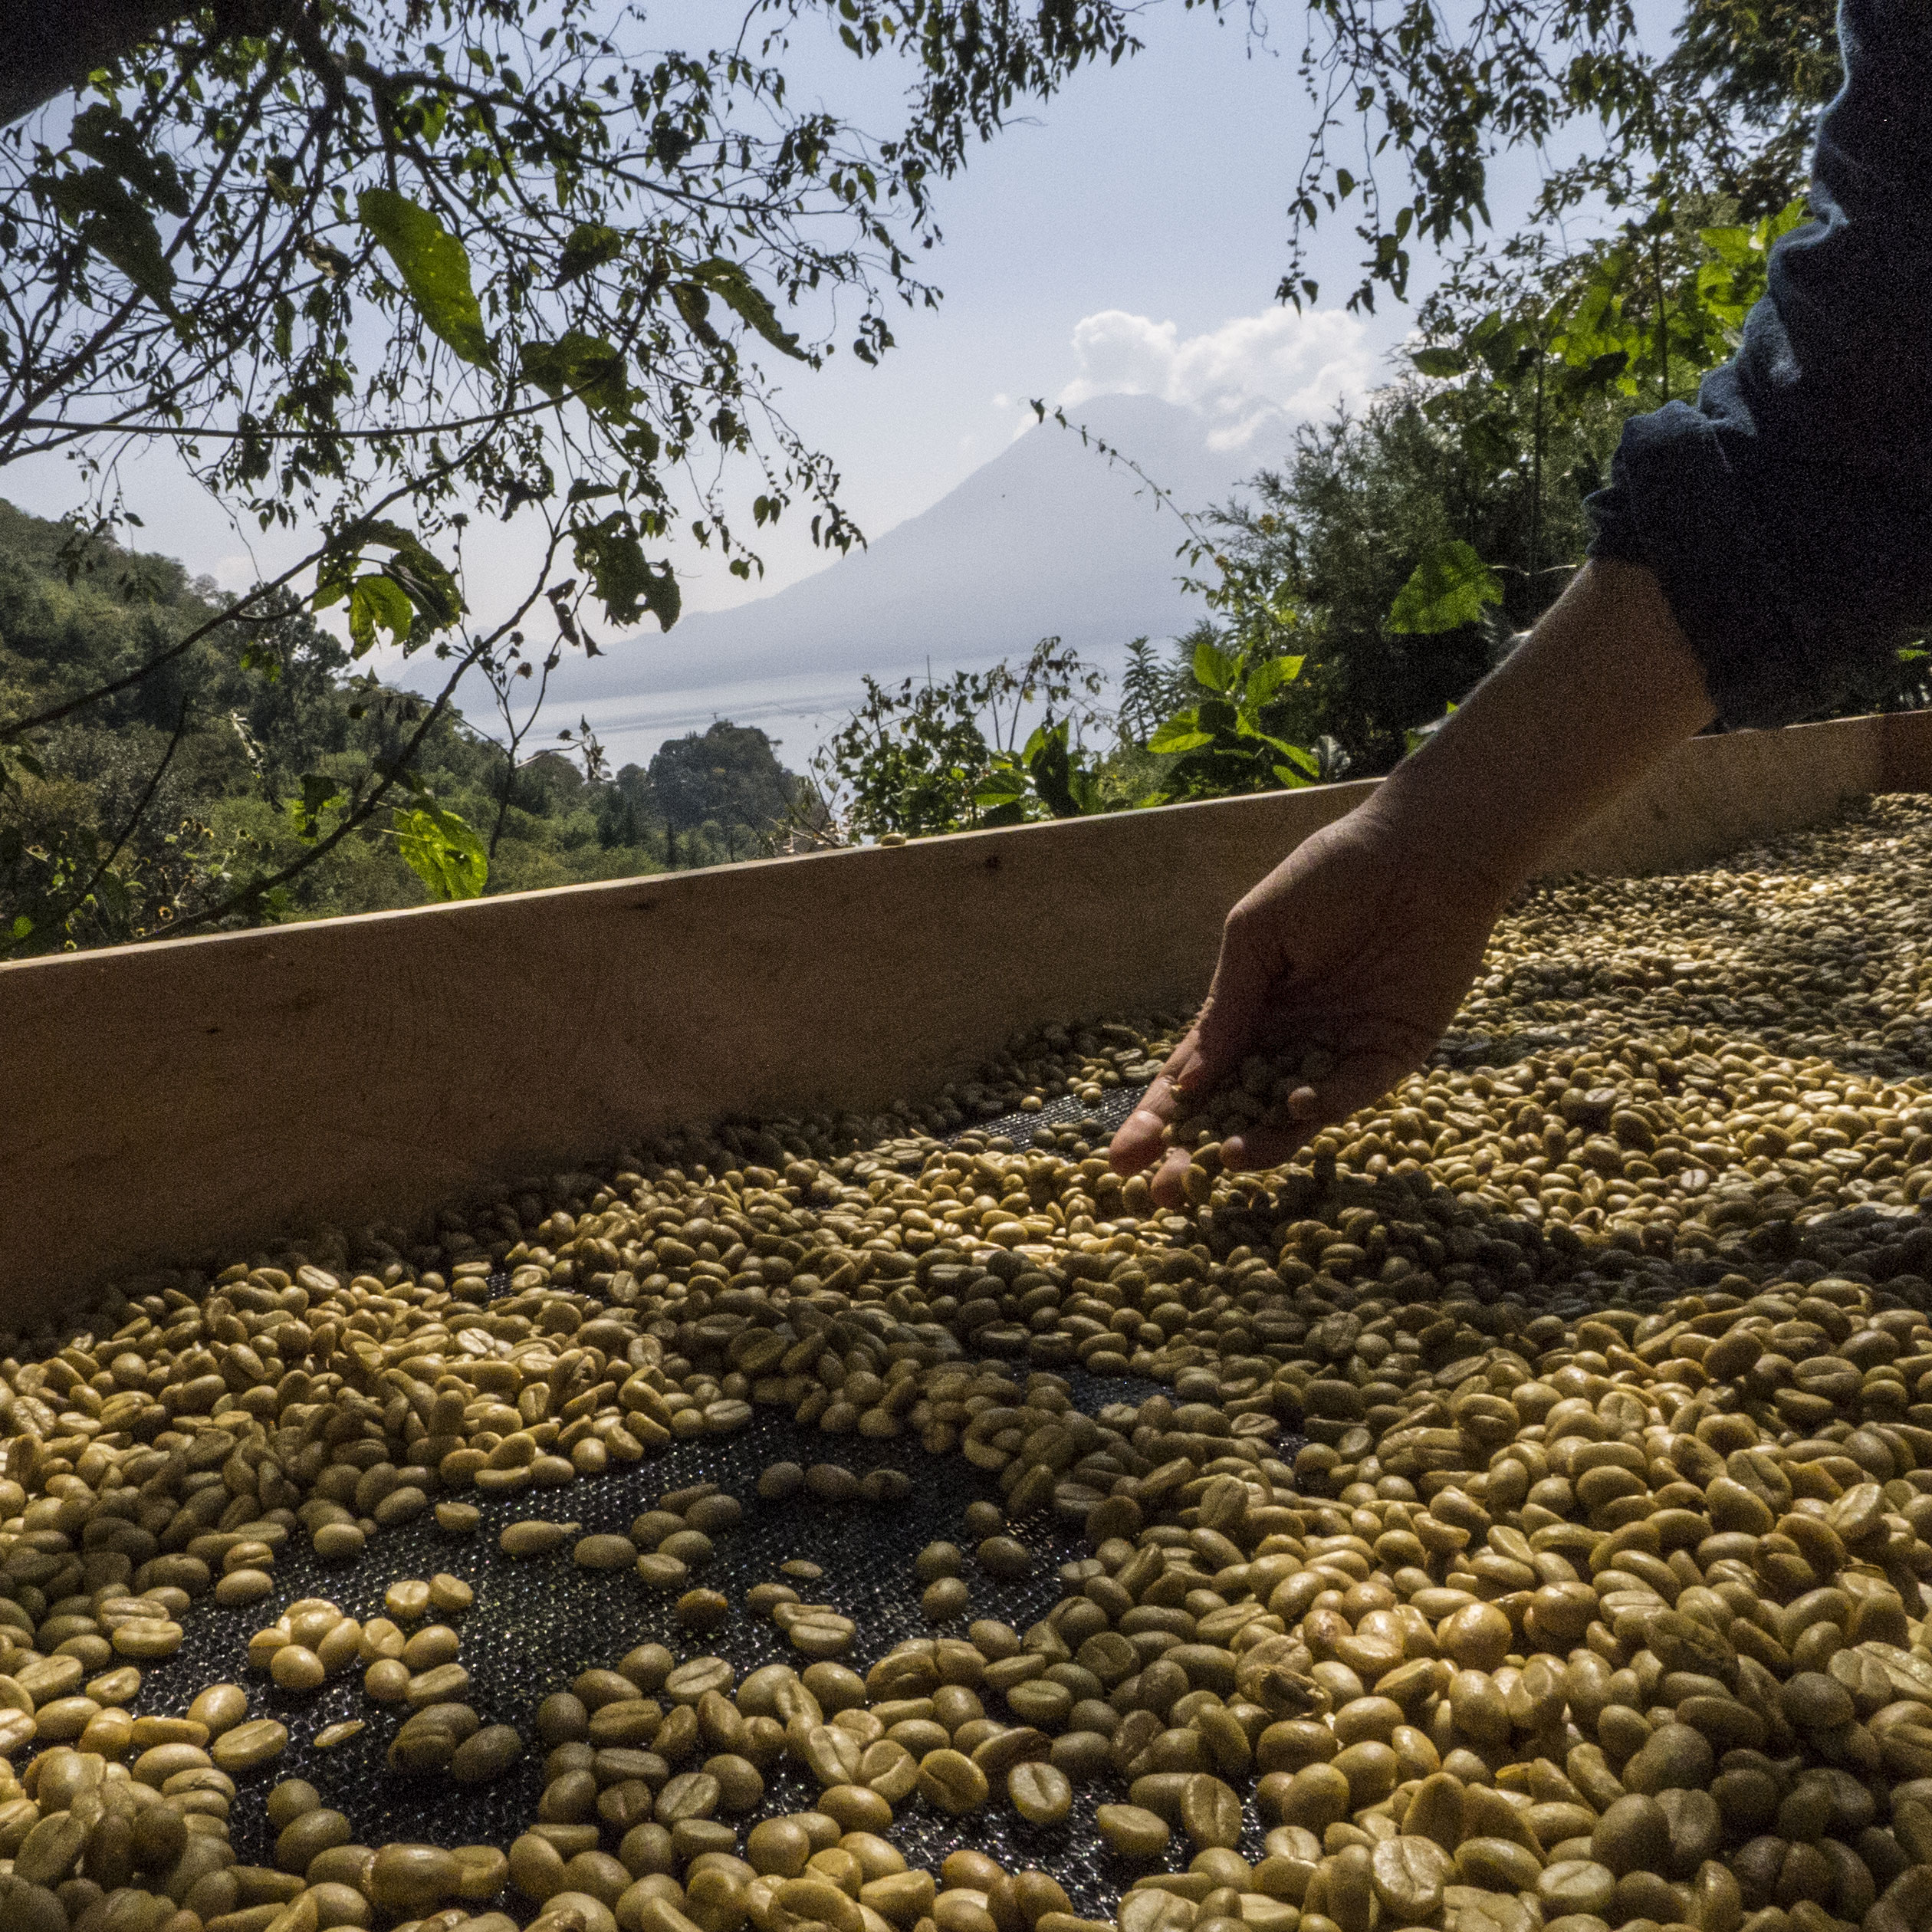 shade drying coffee beans